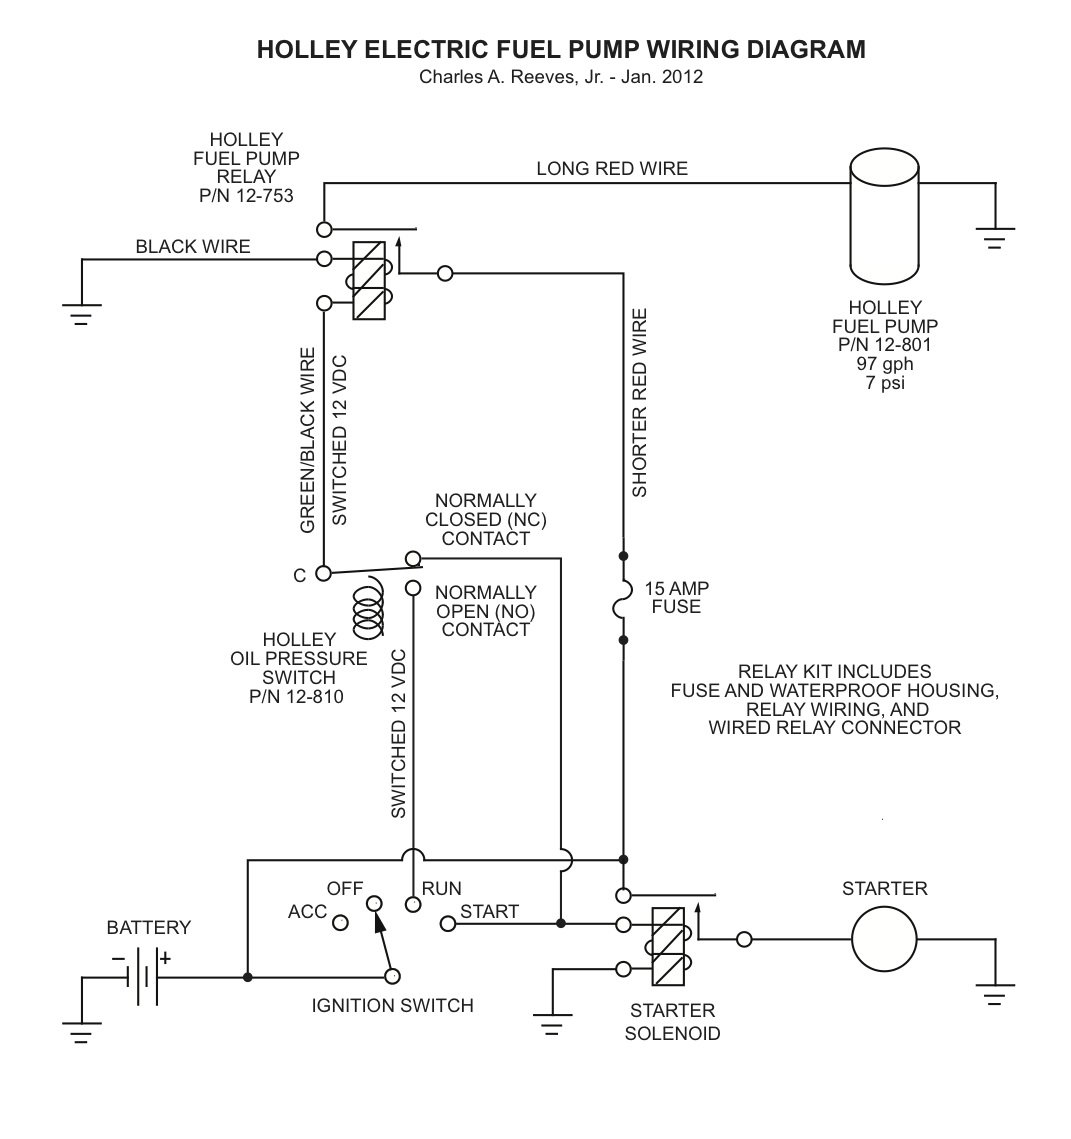 2000 Ford Mustang Fuel Pump Relay Wiring Diagramon 1986 Ford F 150 Wiring Diagram